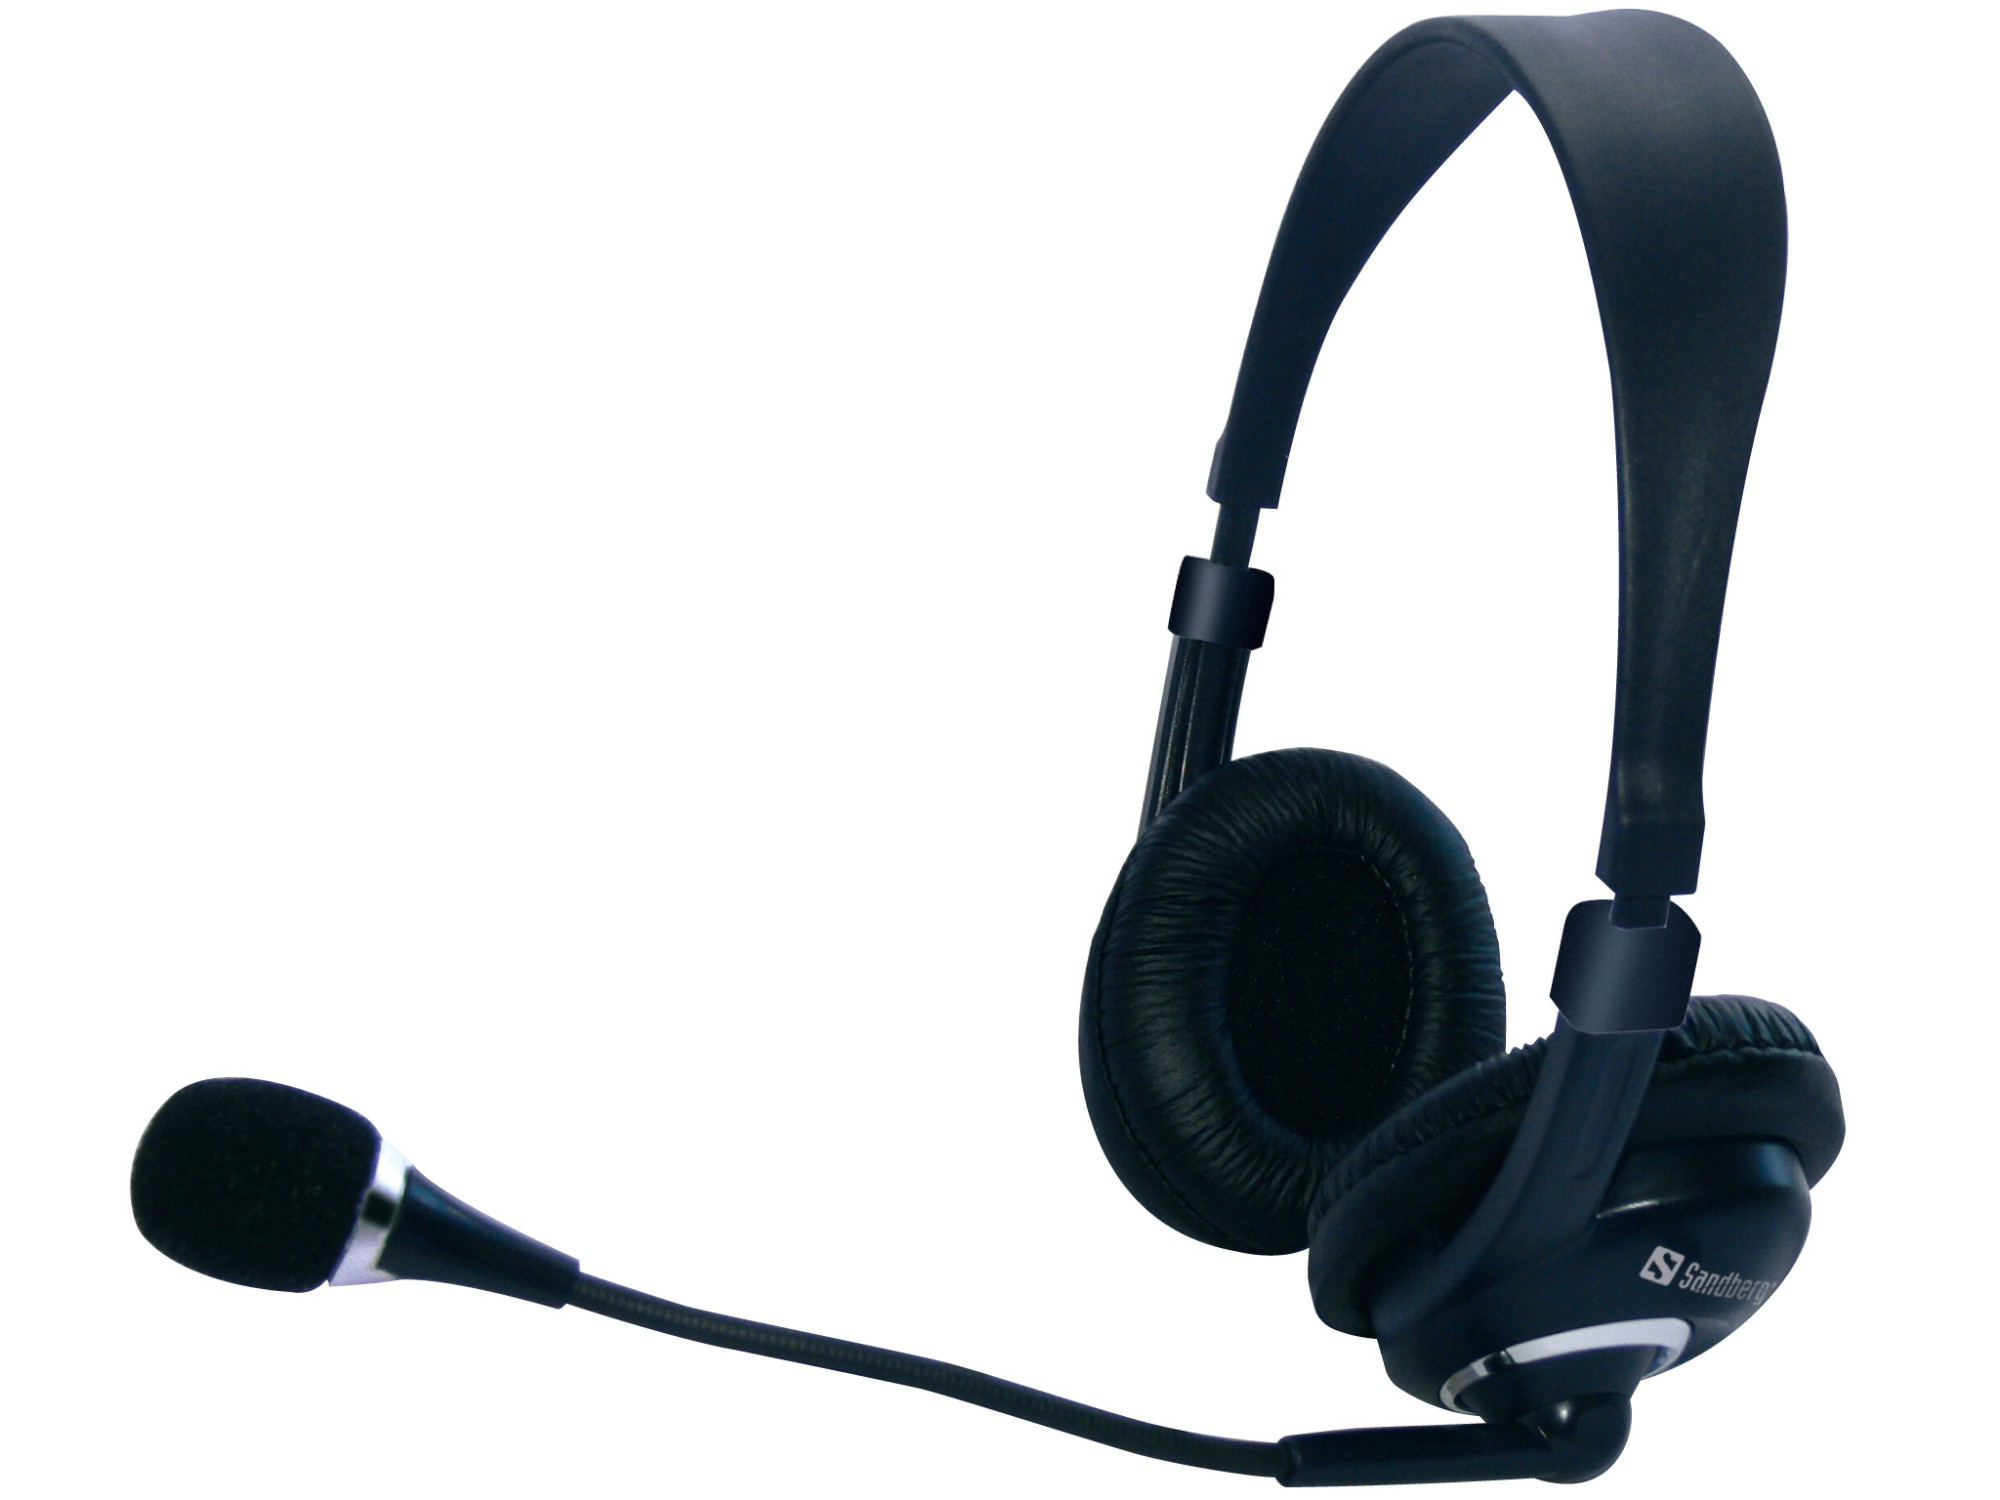 Headset One headset (ear-cup)